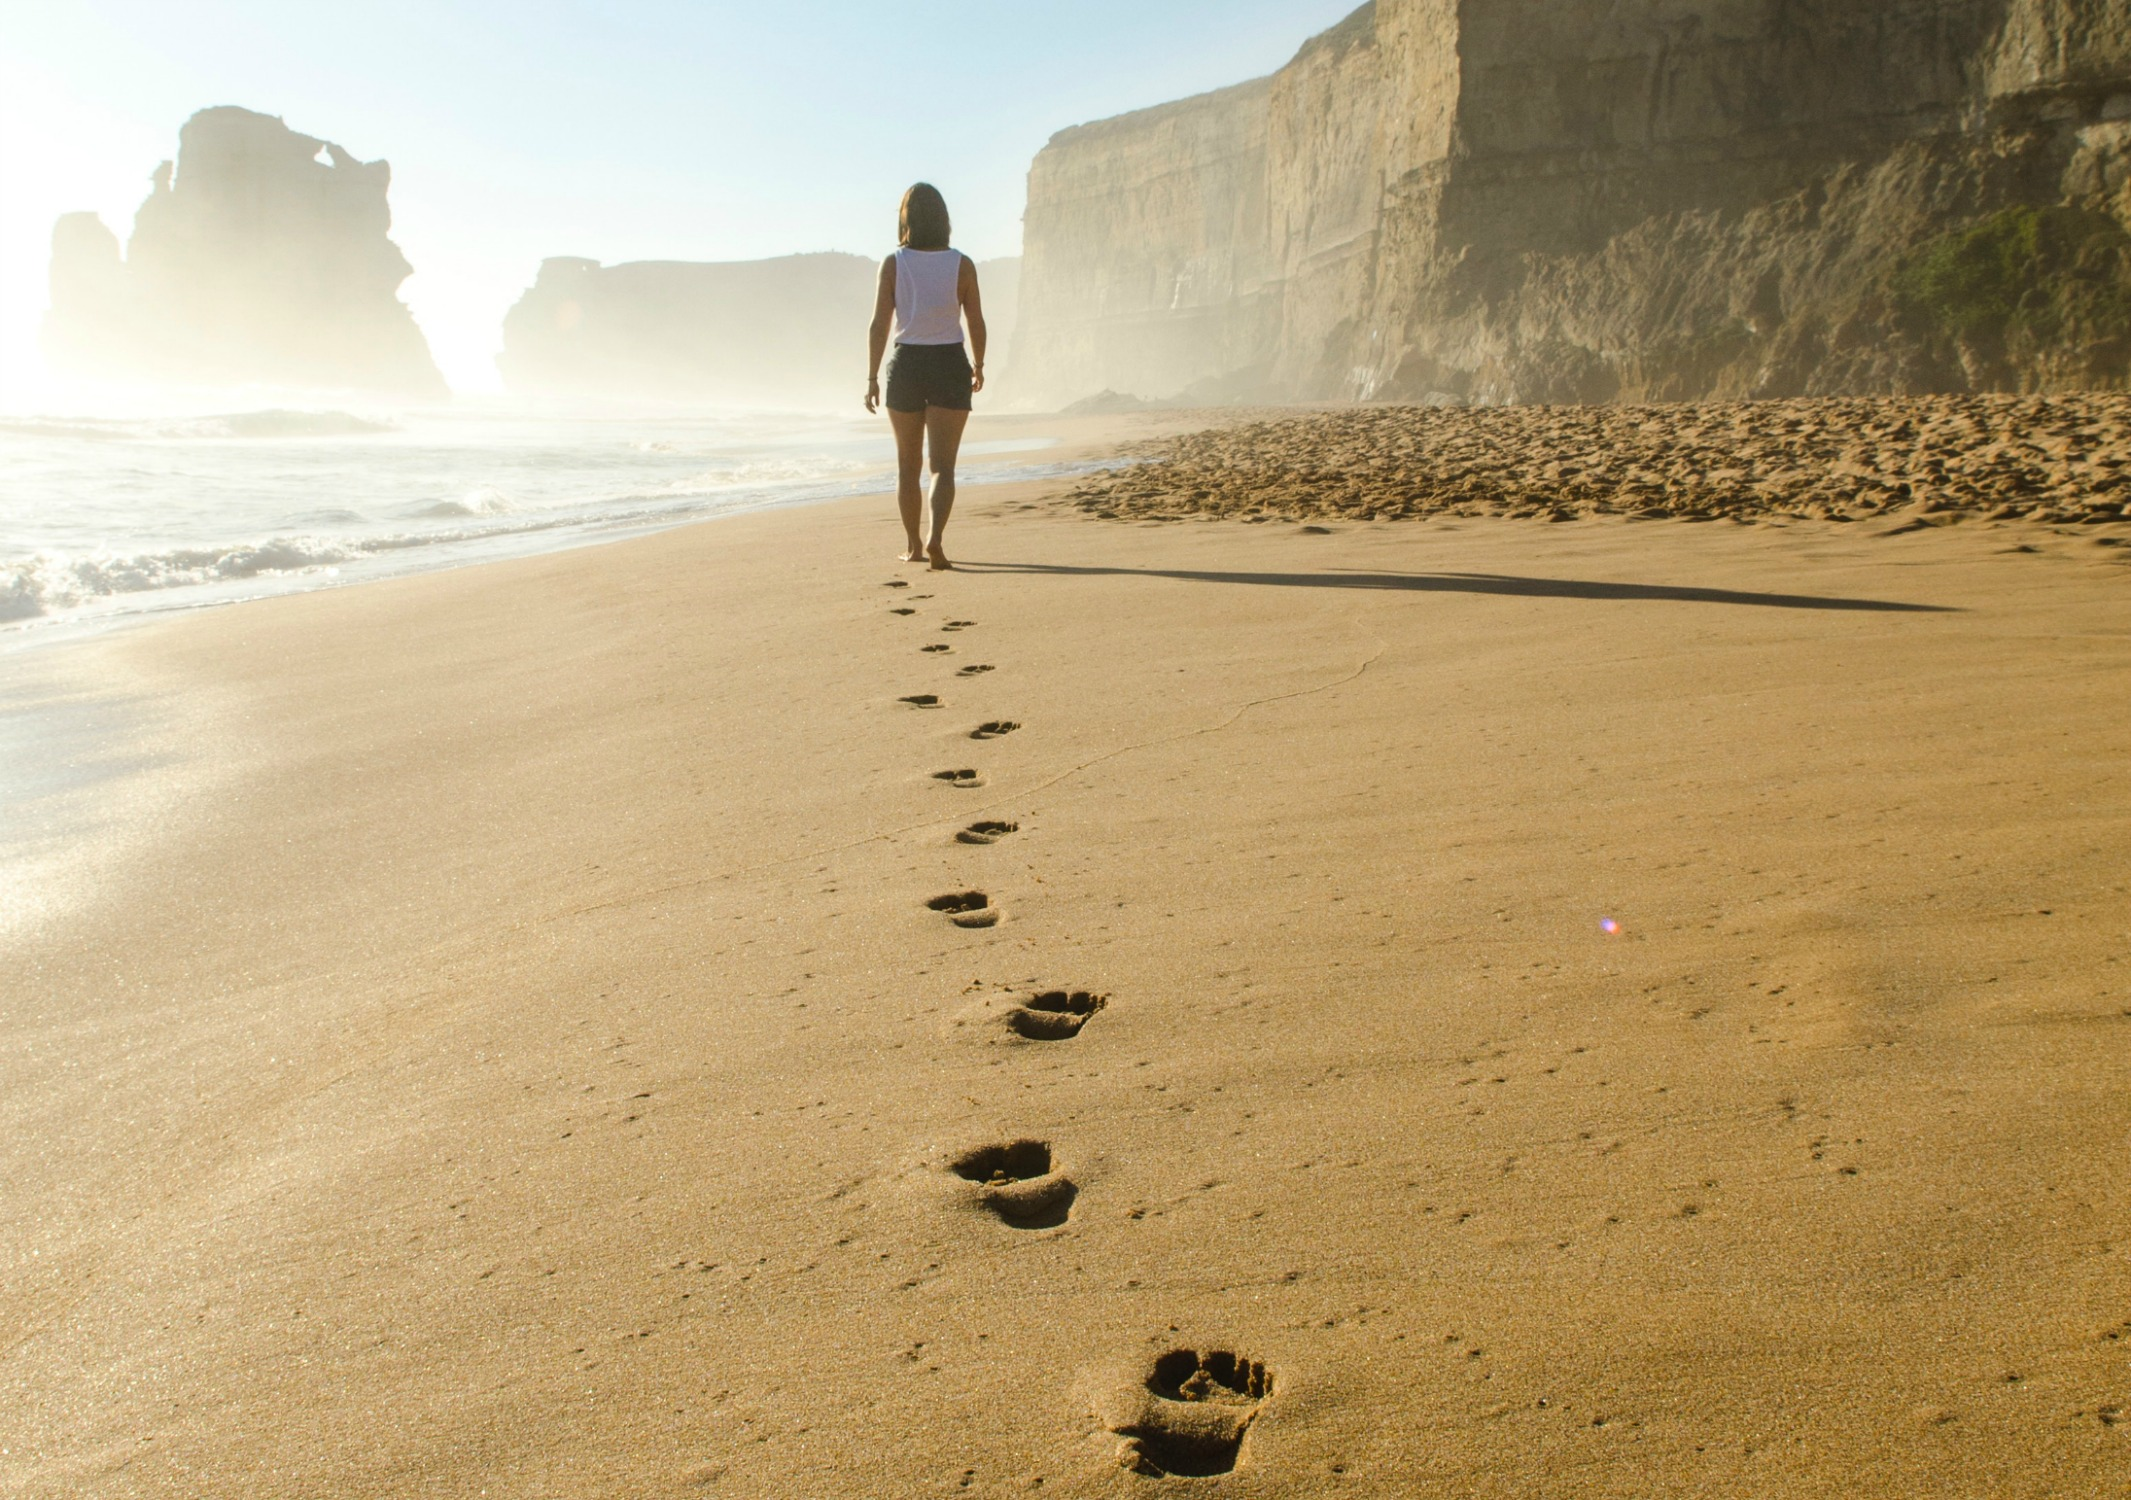 location-beach-footsteps.jpg